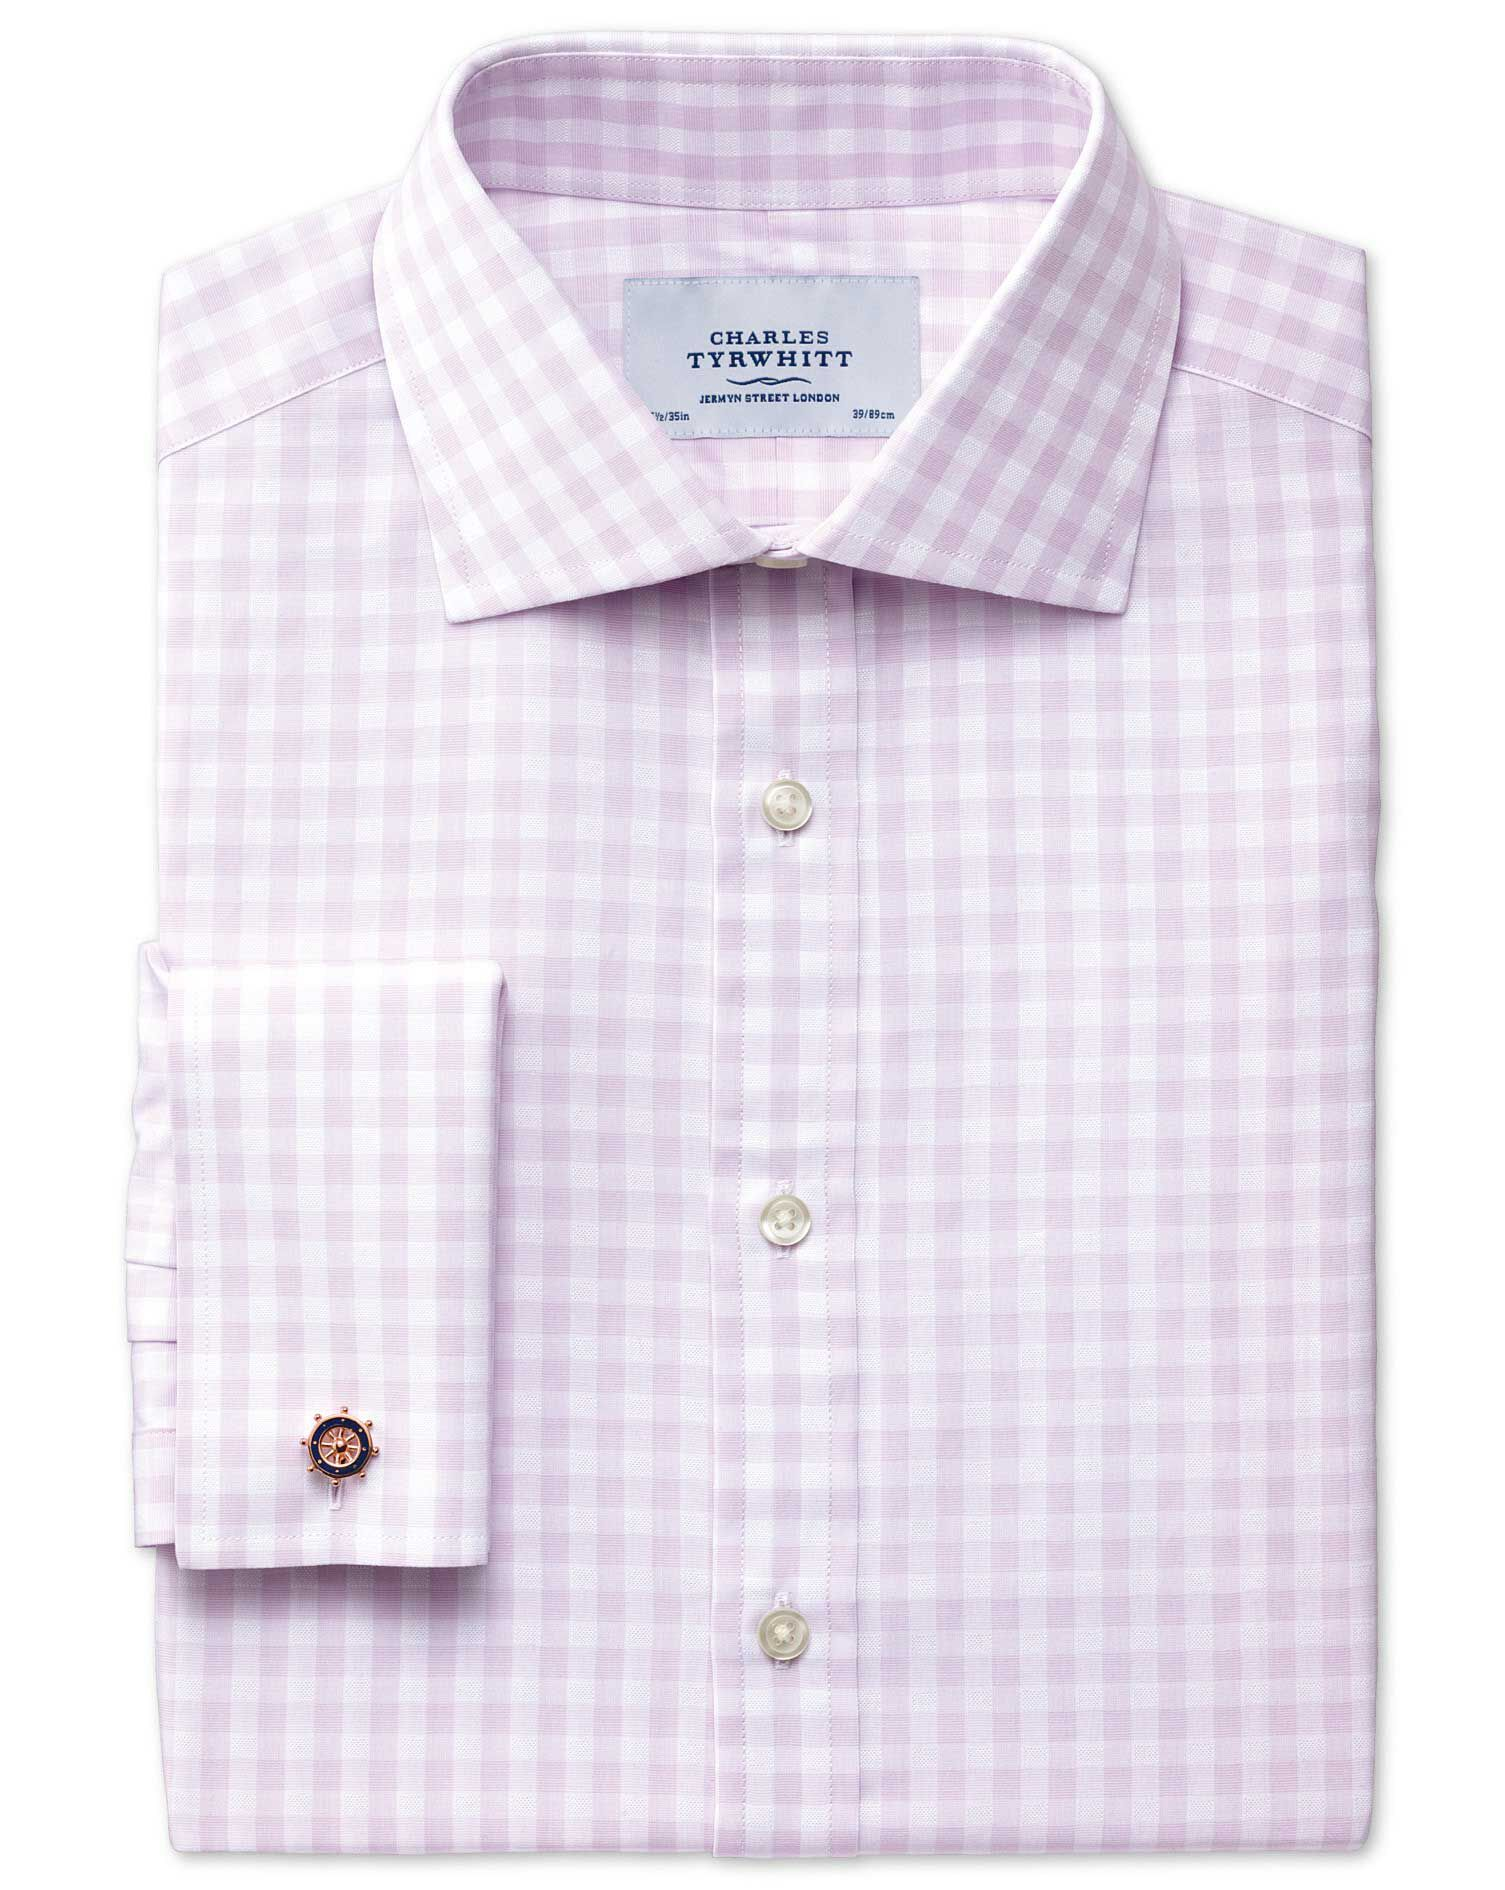 Slim Fit Semi-Cutaway Collar Textured Gingham Lilac Cotton Formal Shirt Double Cuff Size 14.5/33 by